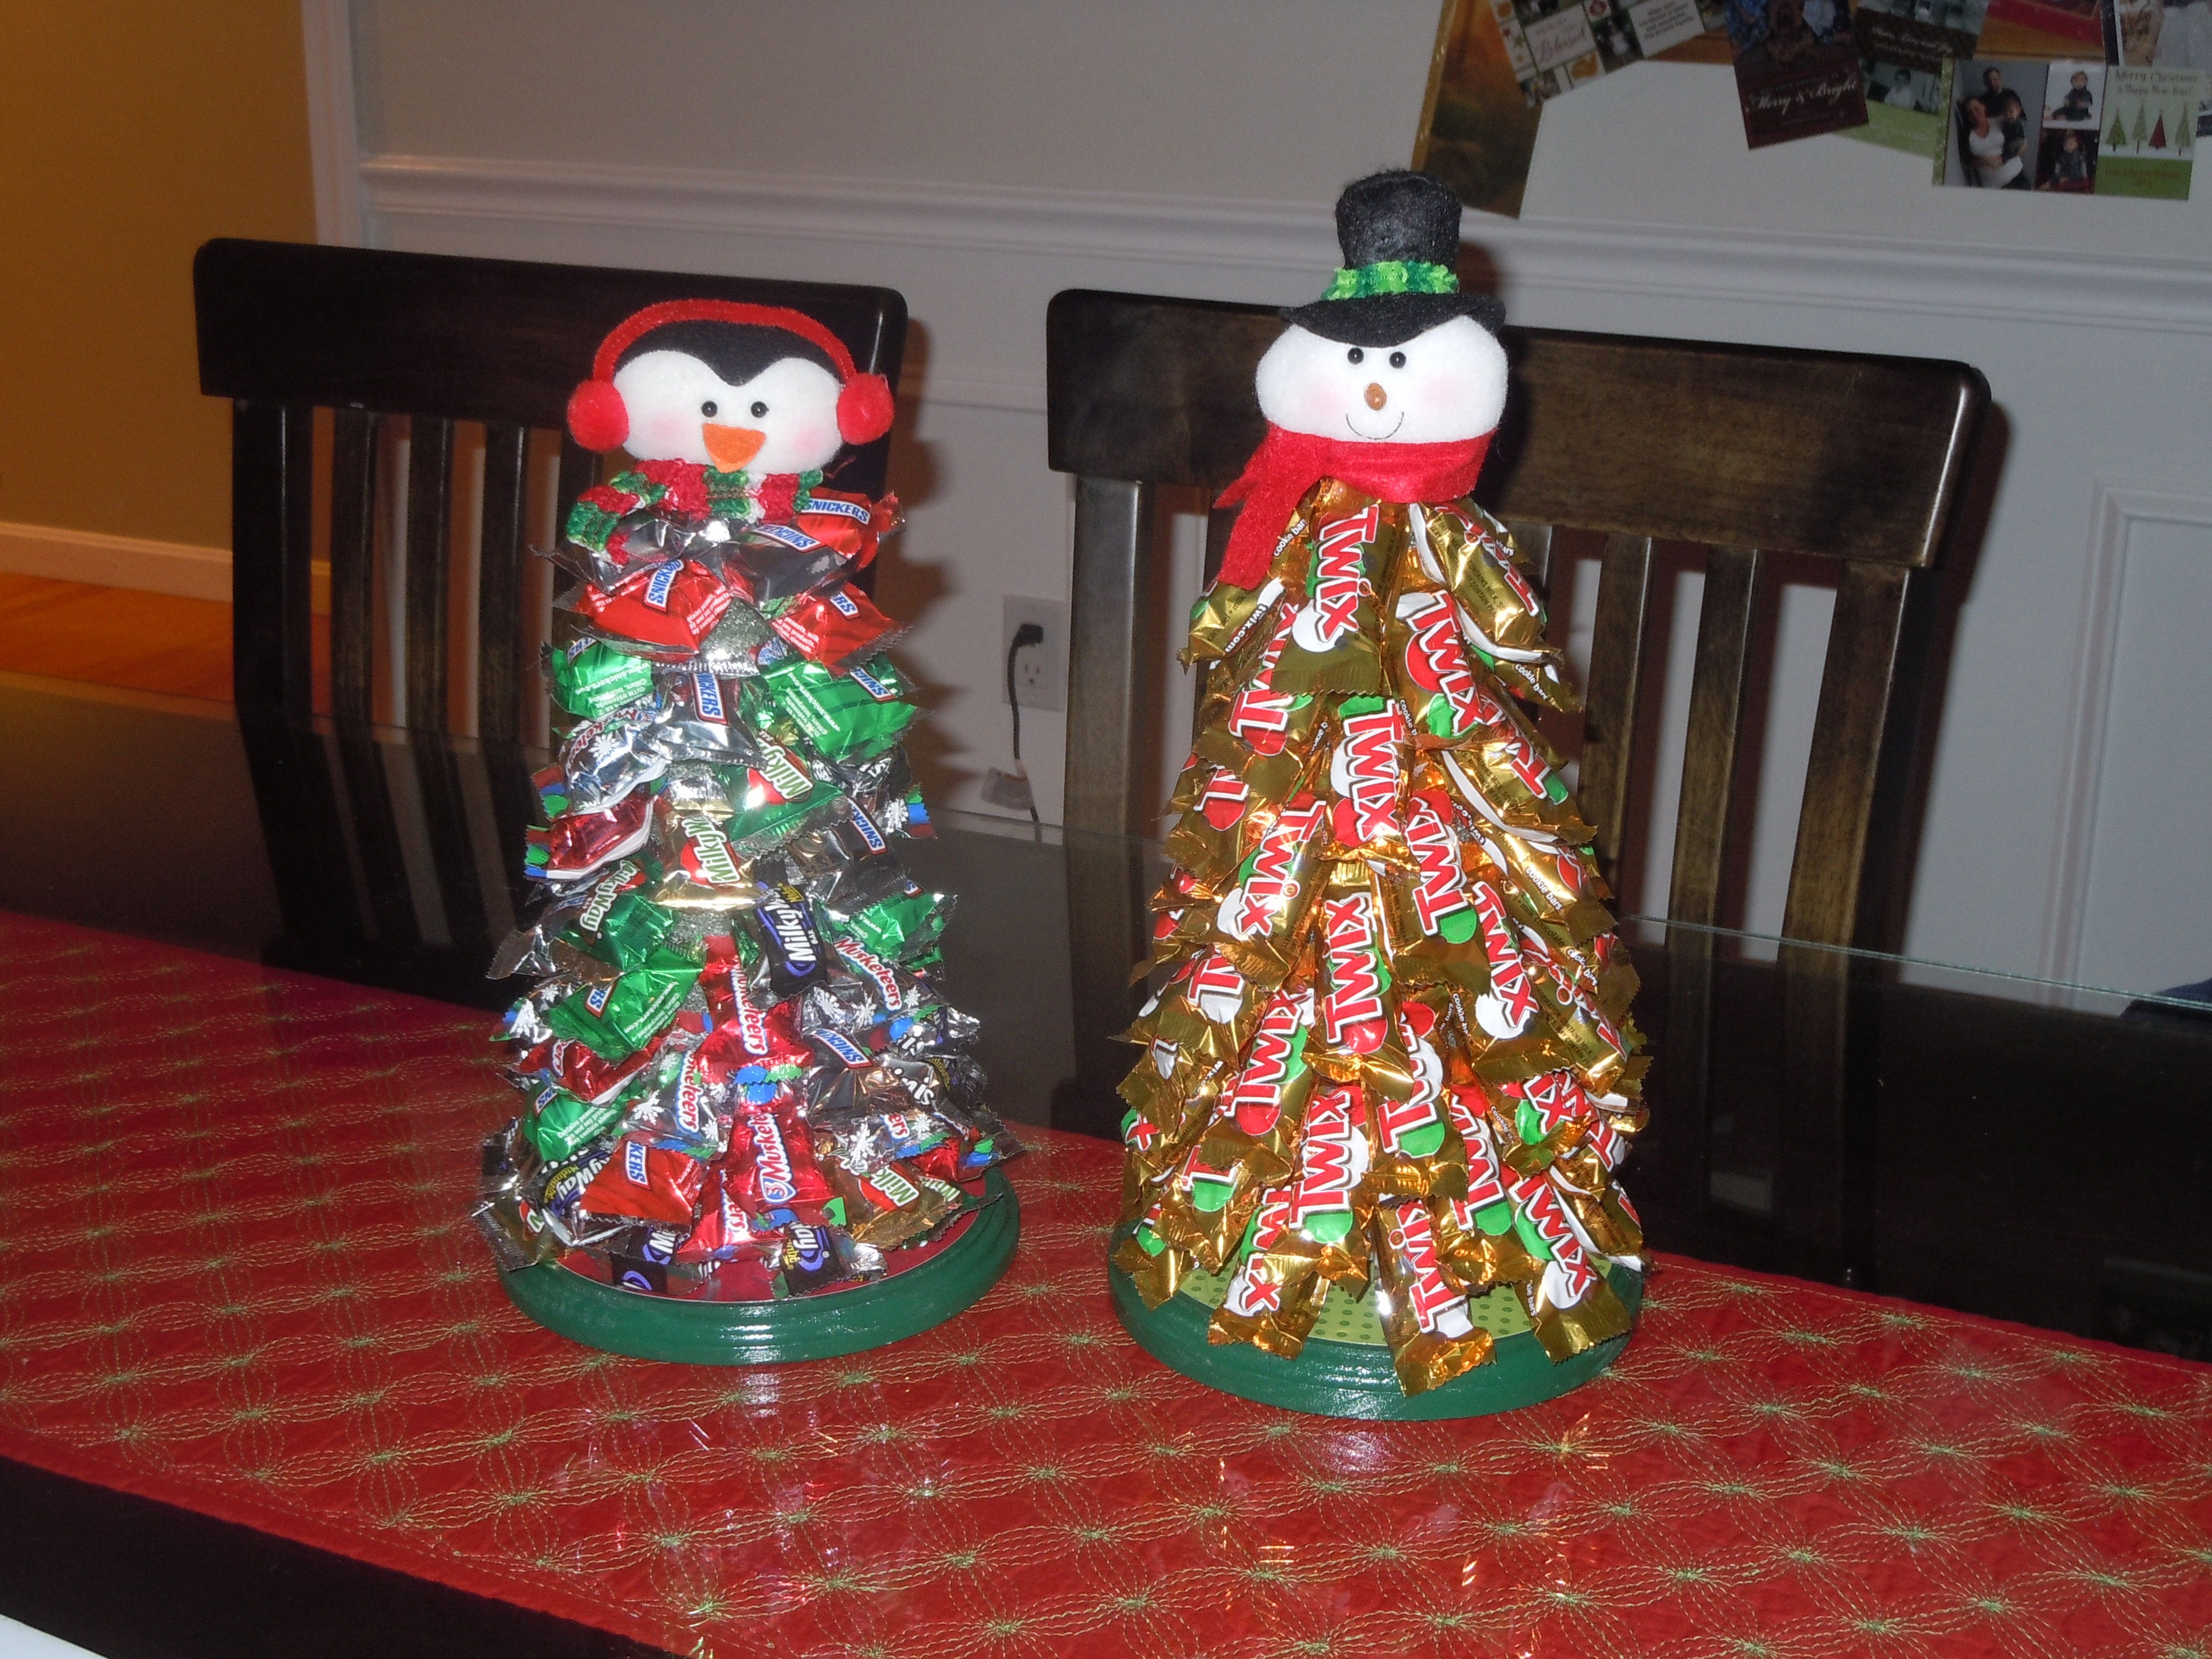 Candy bar Christmas trees | Things I made | Pinterest | Christmas ...